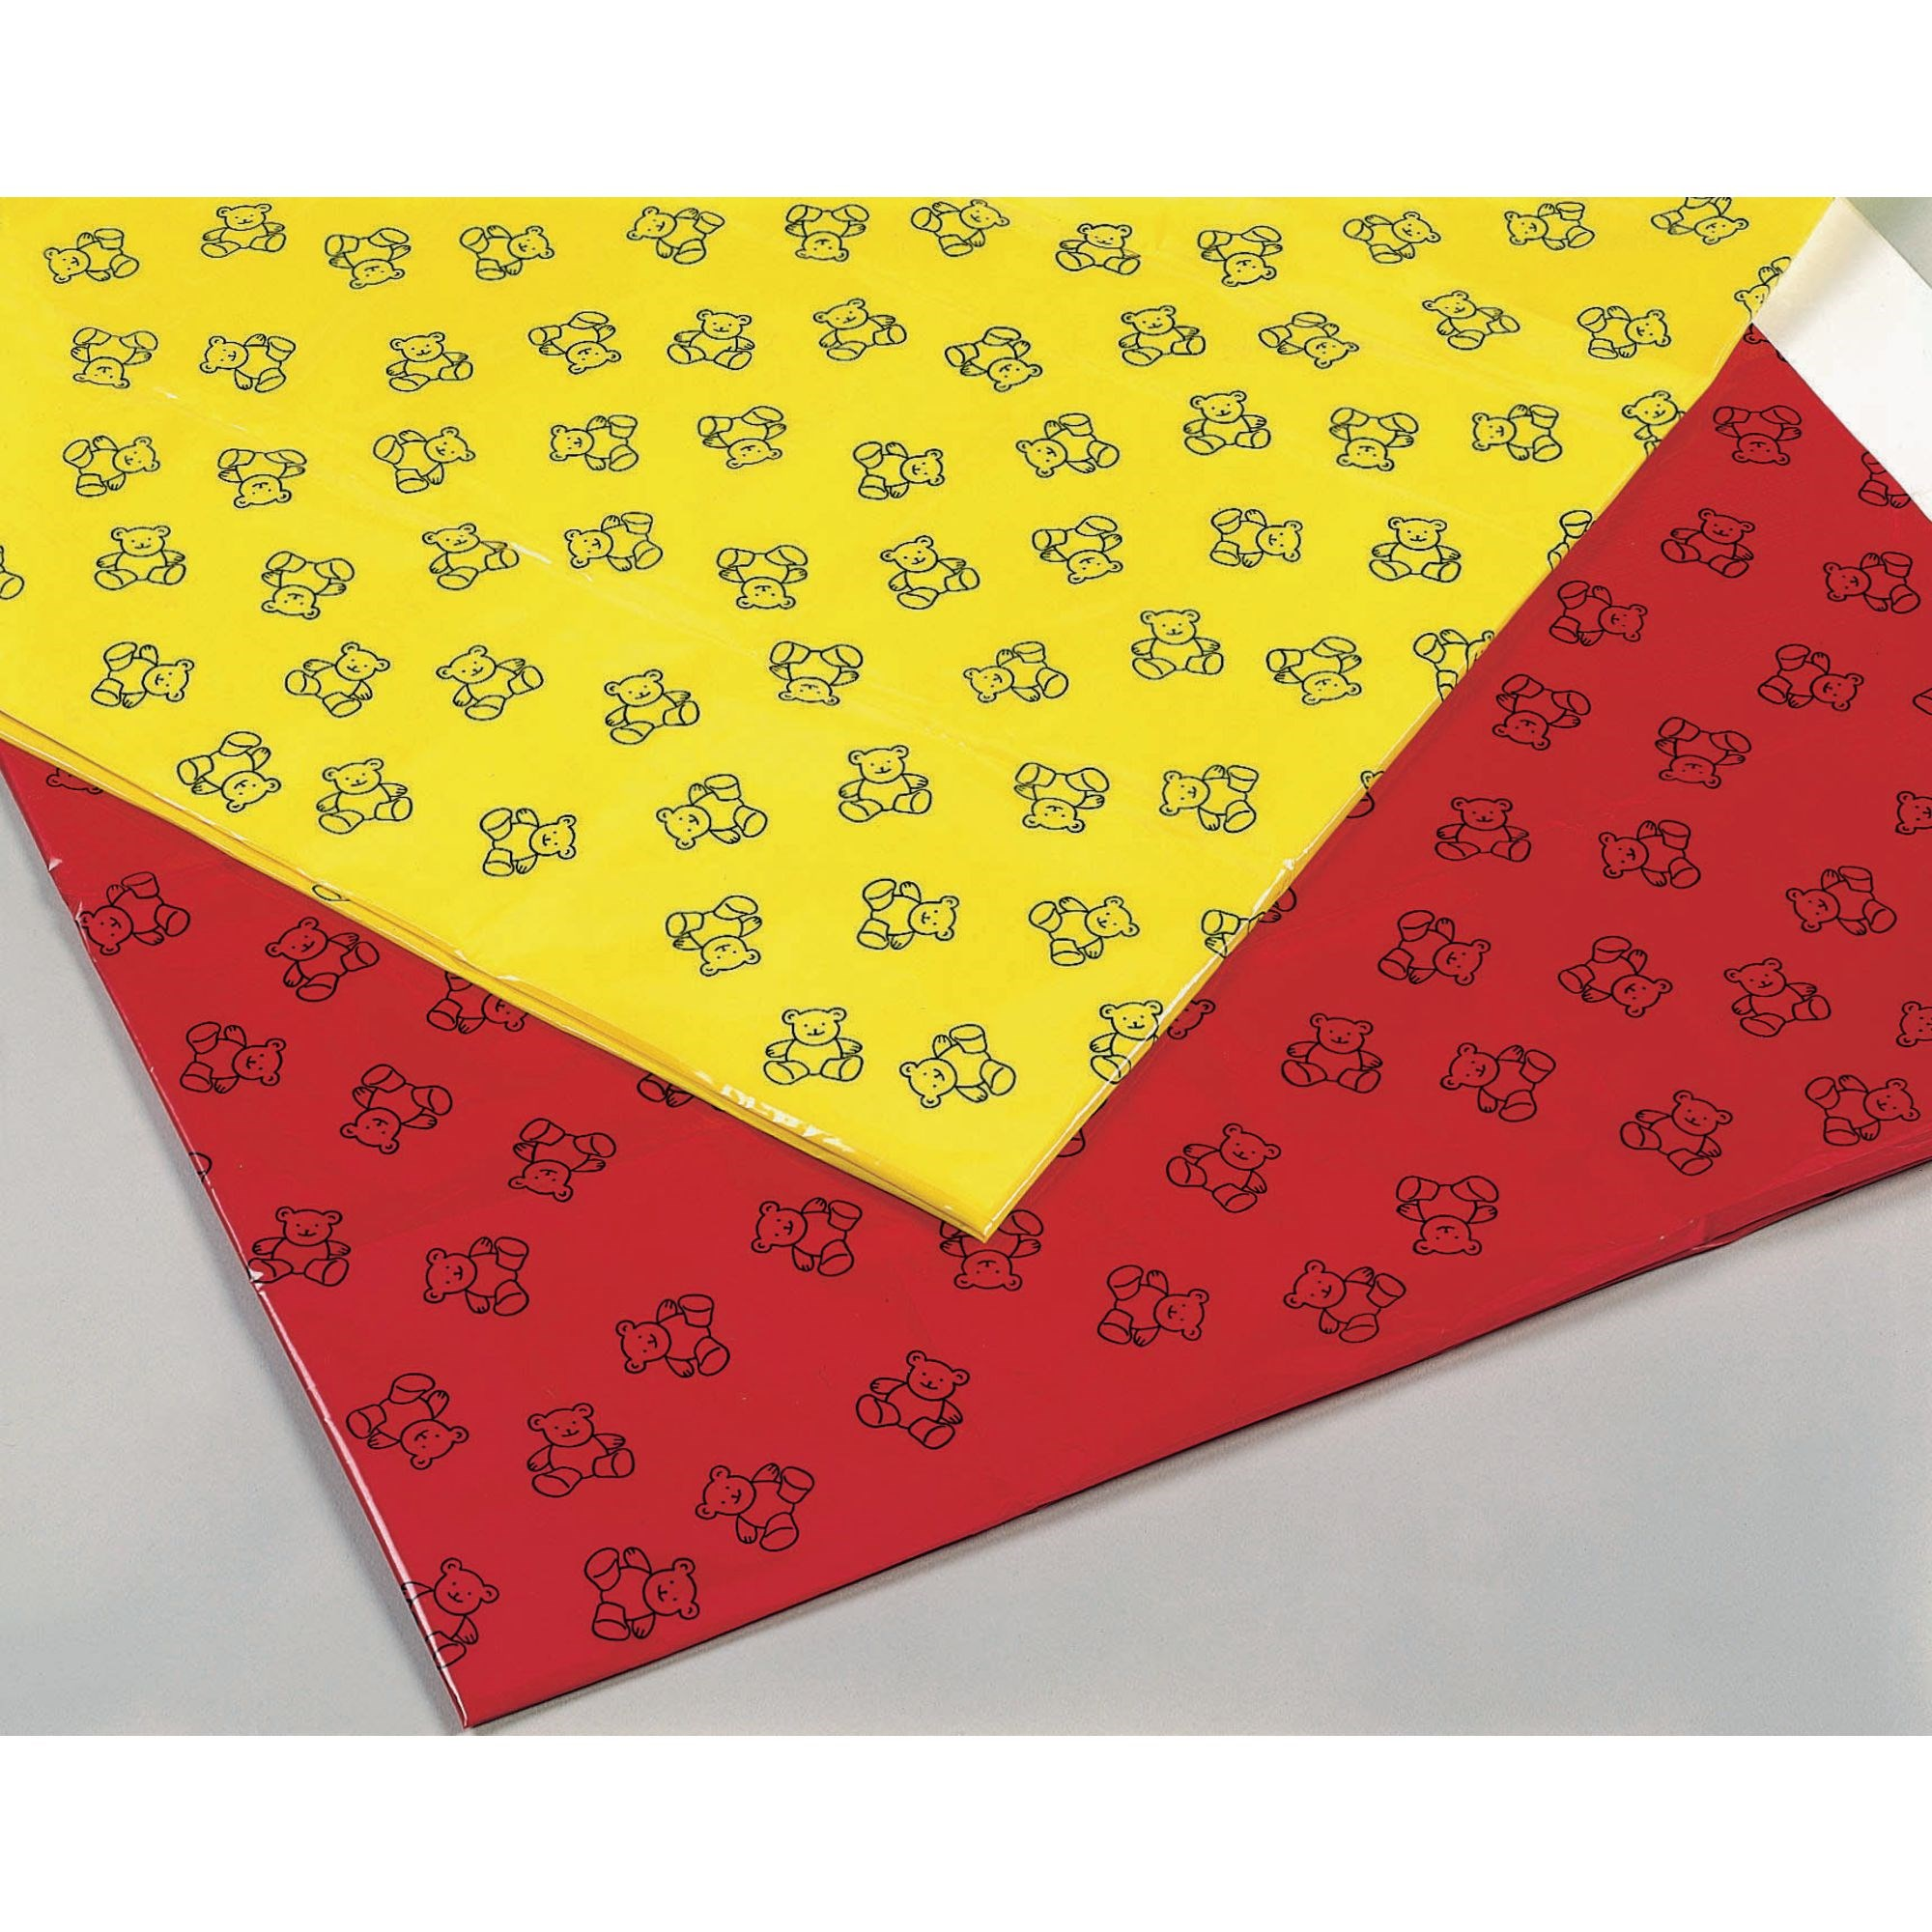 Teddy Splashmat - Yellow 1.47mSq